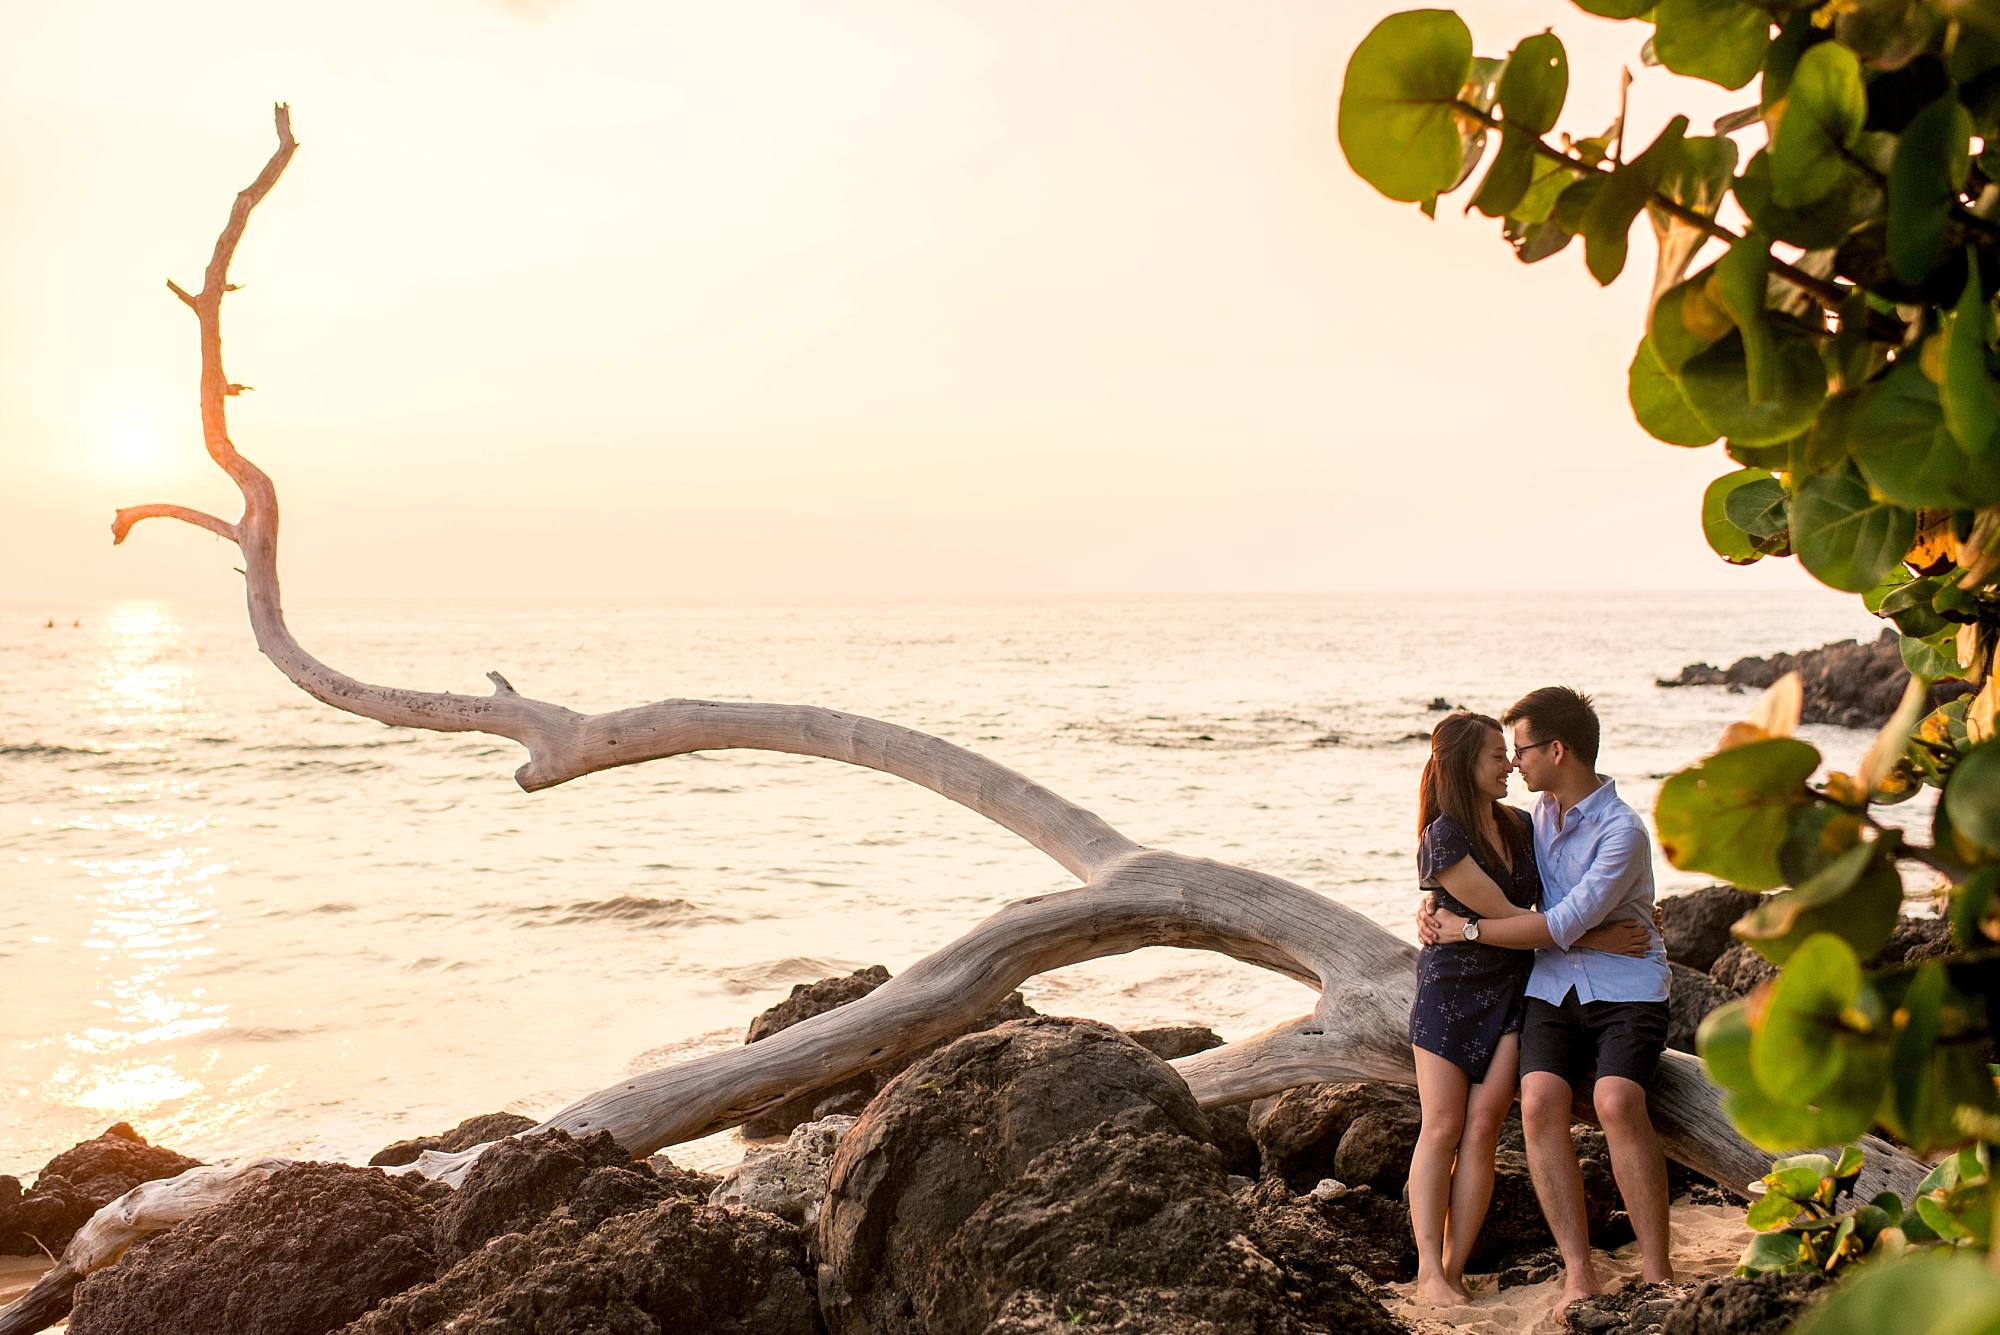 snuggling newly engaged couple on incredible driftwood tree in Maui